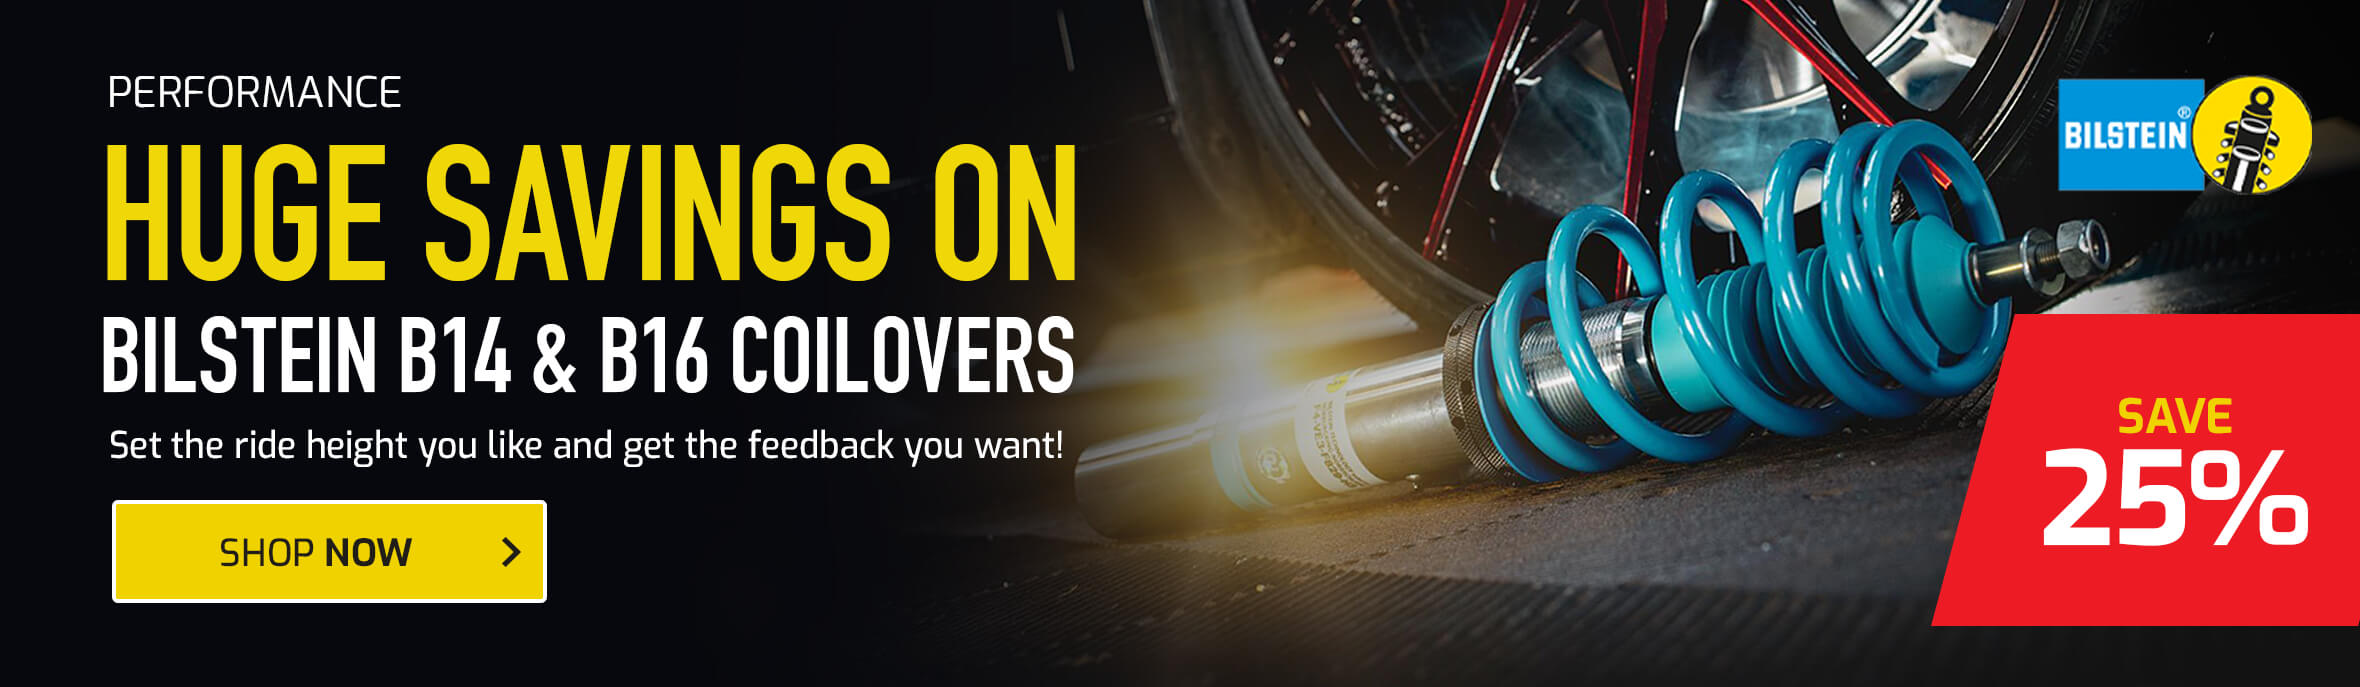 Save 25% on Bilstein B14 & B16 Coilovers